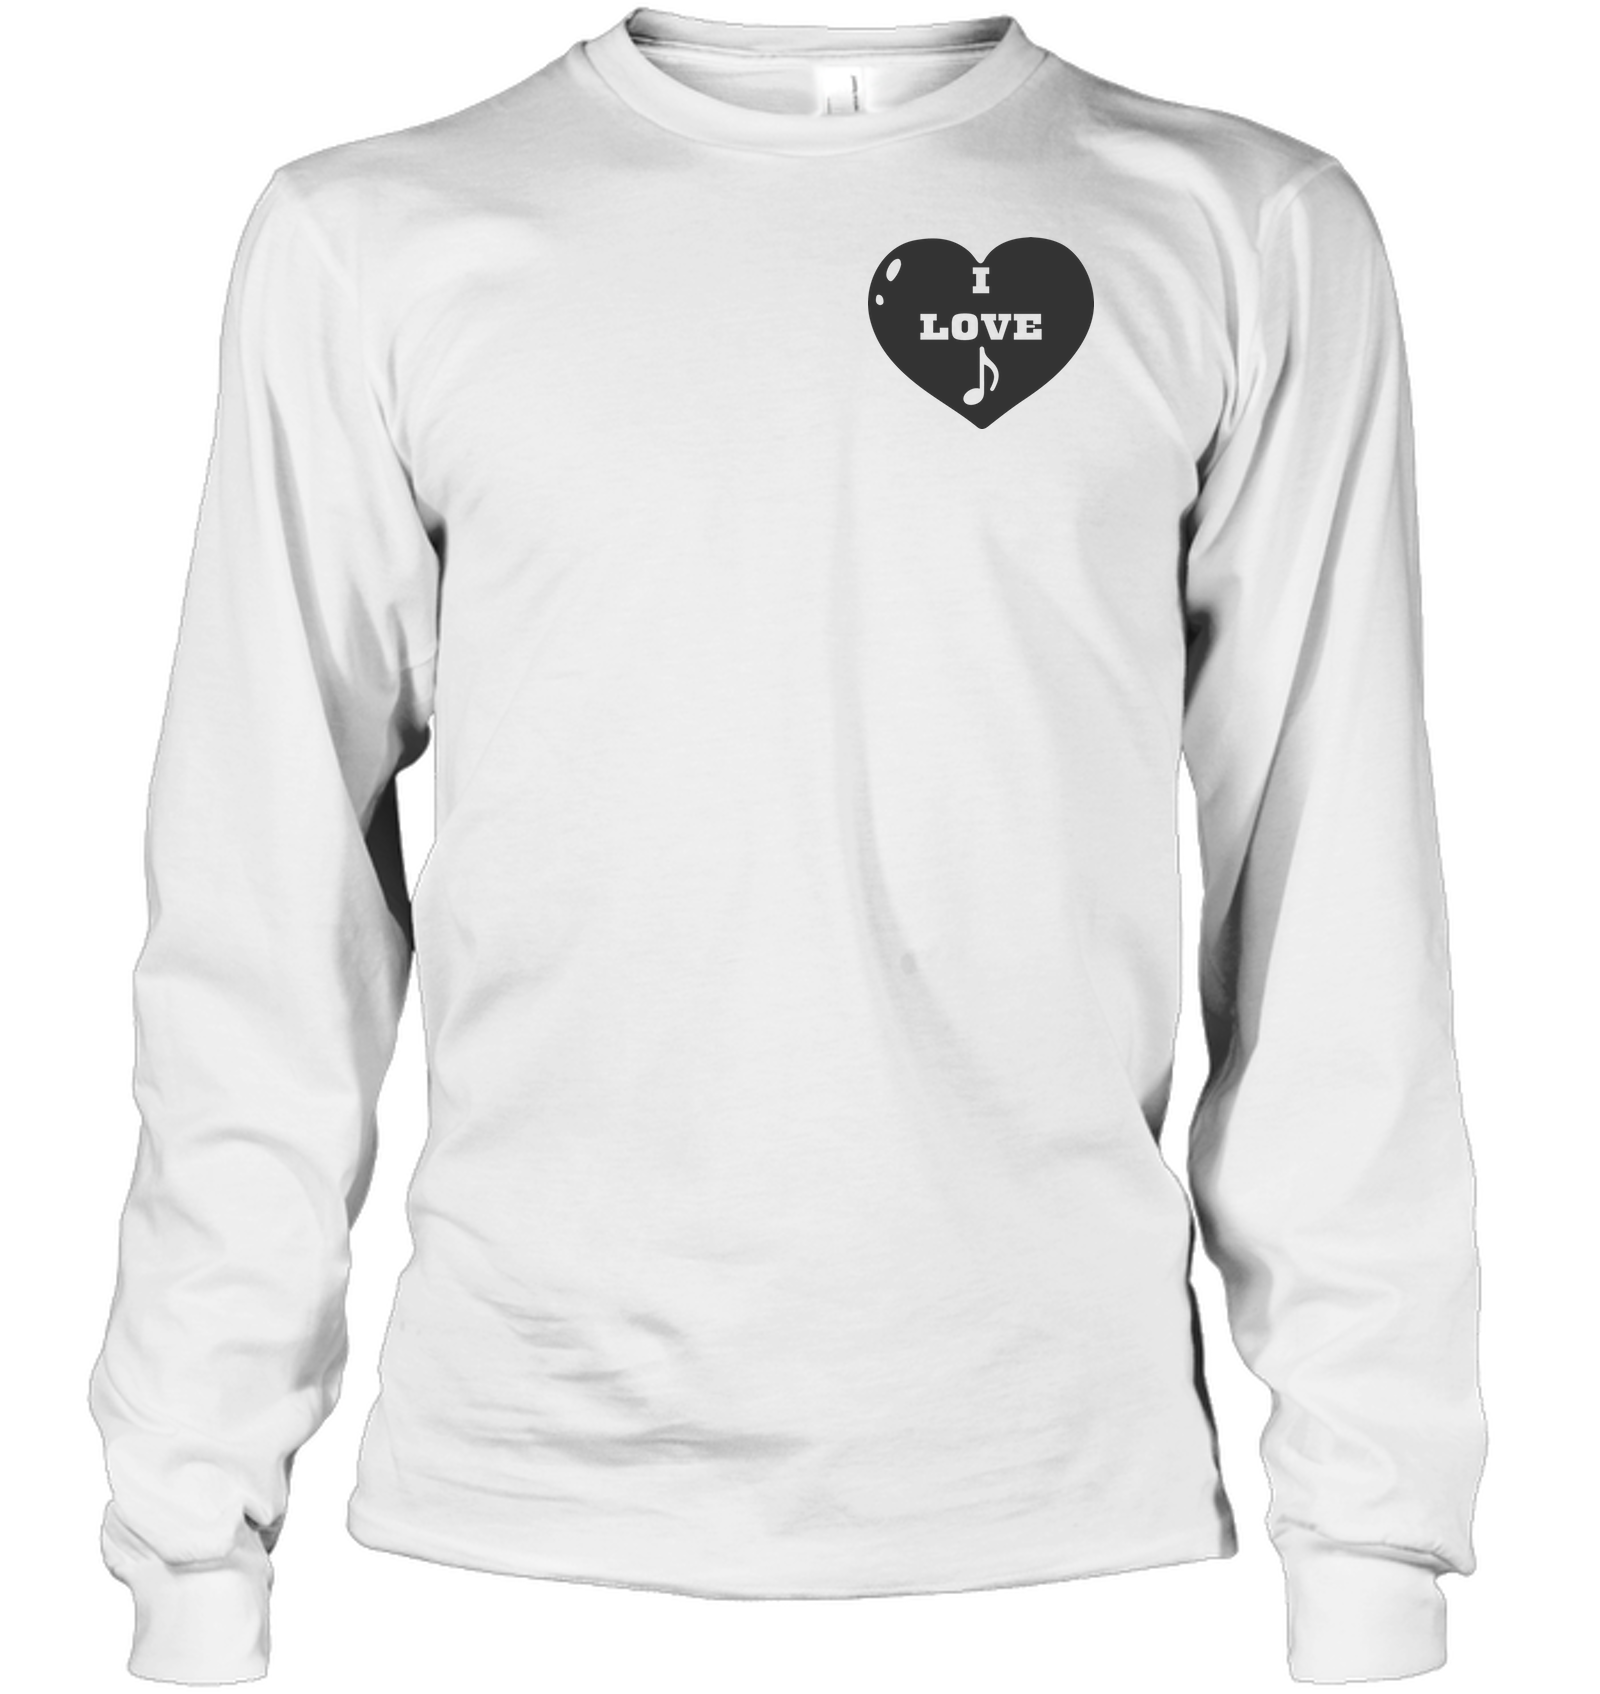 I Love Note Heart (Pocket Size) - Gildan Adult Classic Long Sleeve T-Shirt